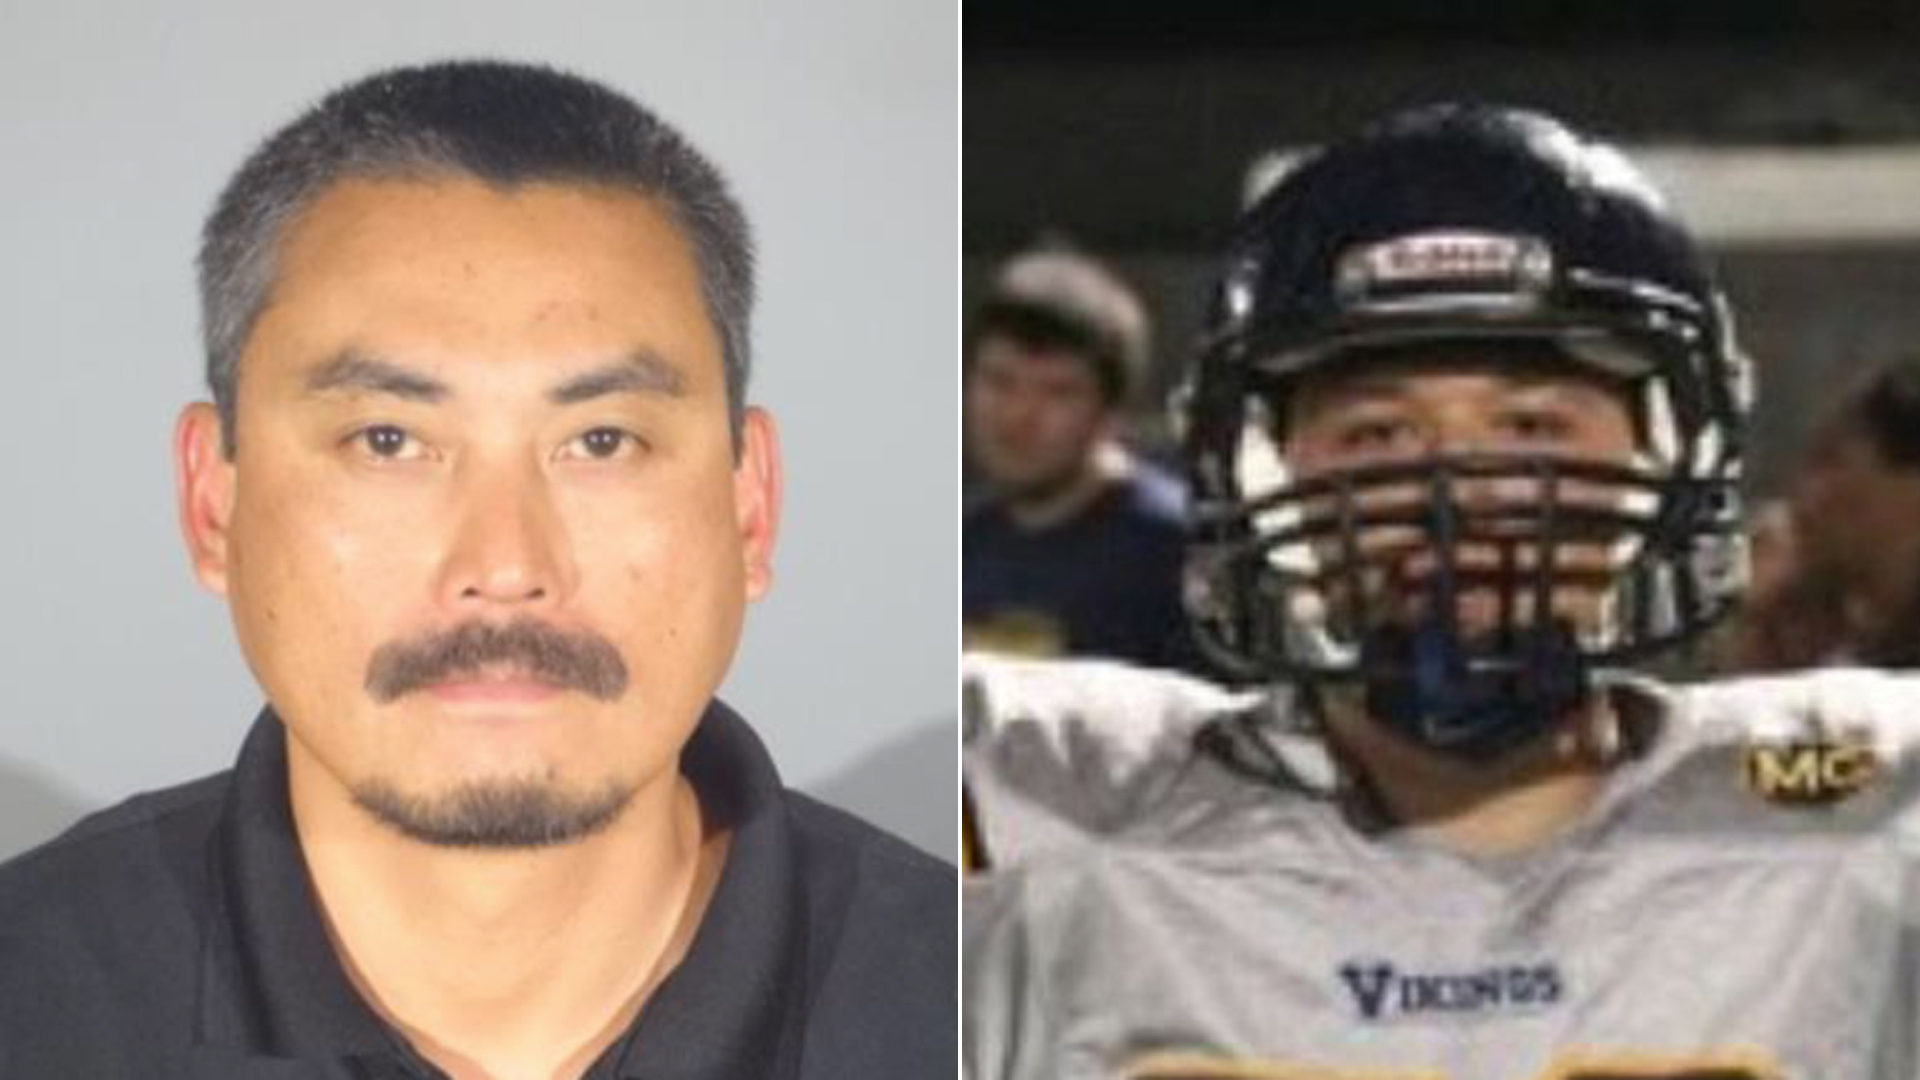 Sherwin Mendoza Espinosa, left, is seen in a booking photo released Aug. 22, 2018, by Santa Monica police. At right, Juan Castillo is seen in an undated photo from a GoFundMe page.